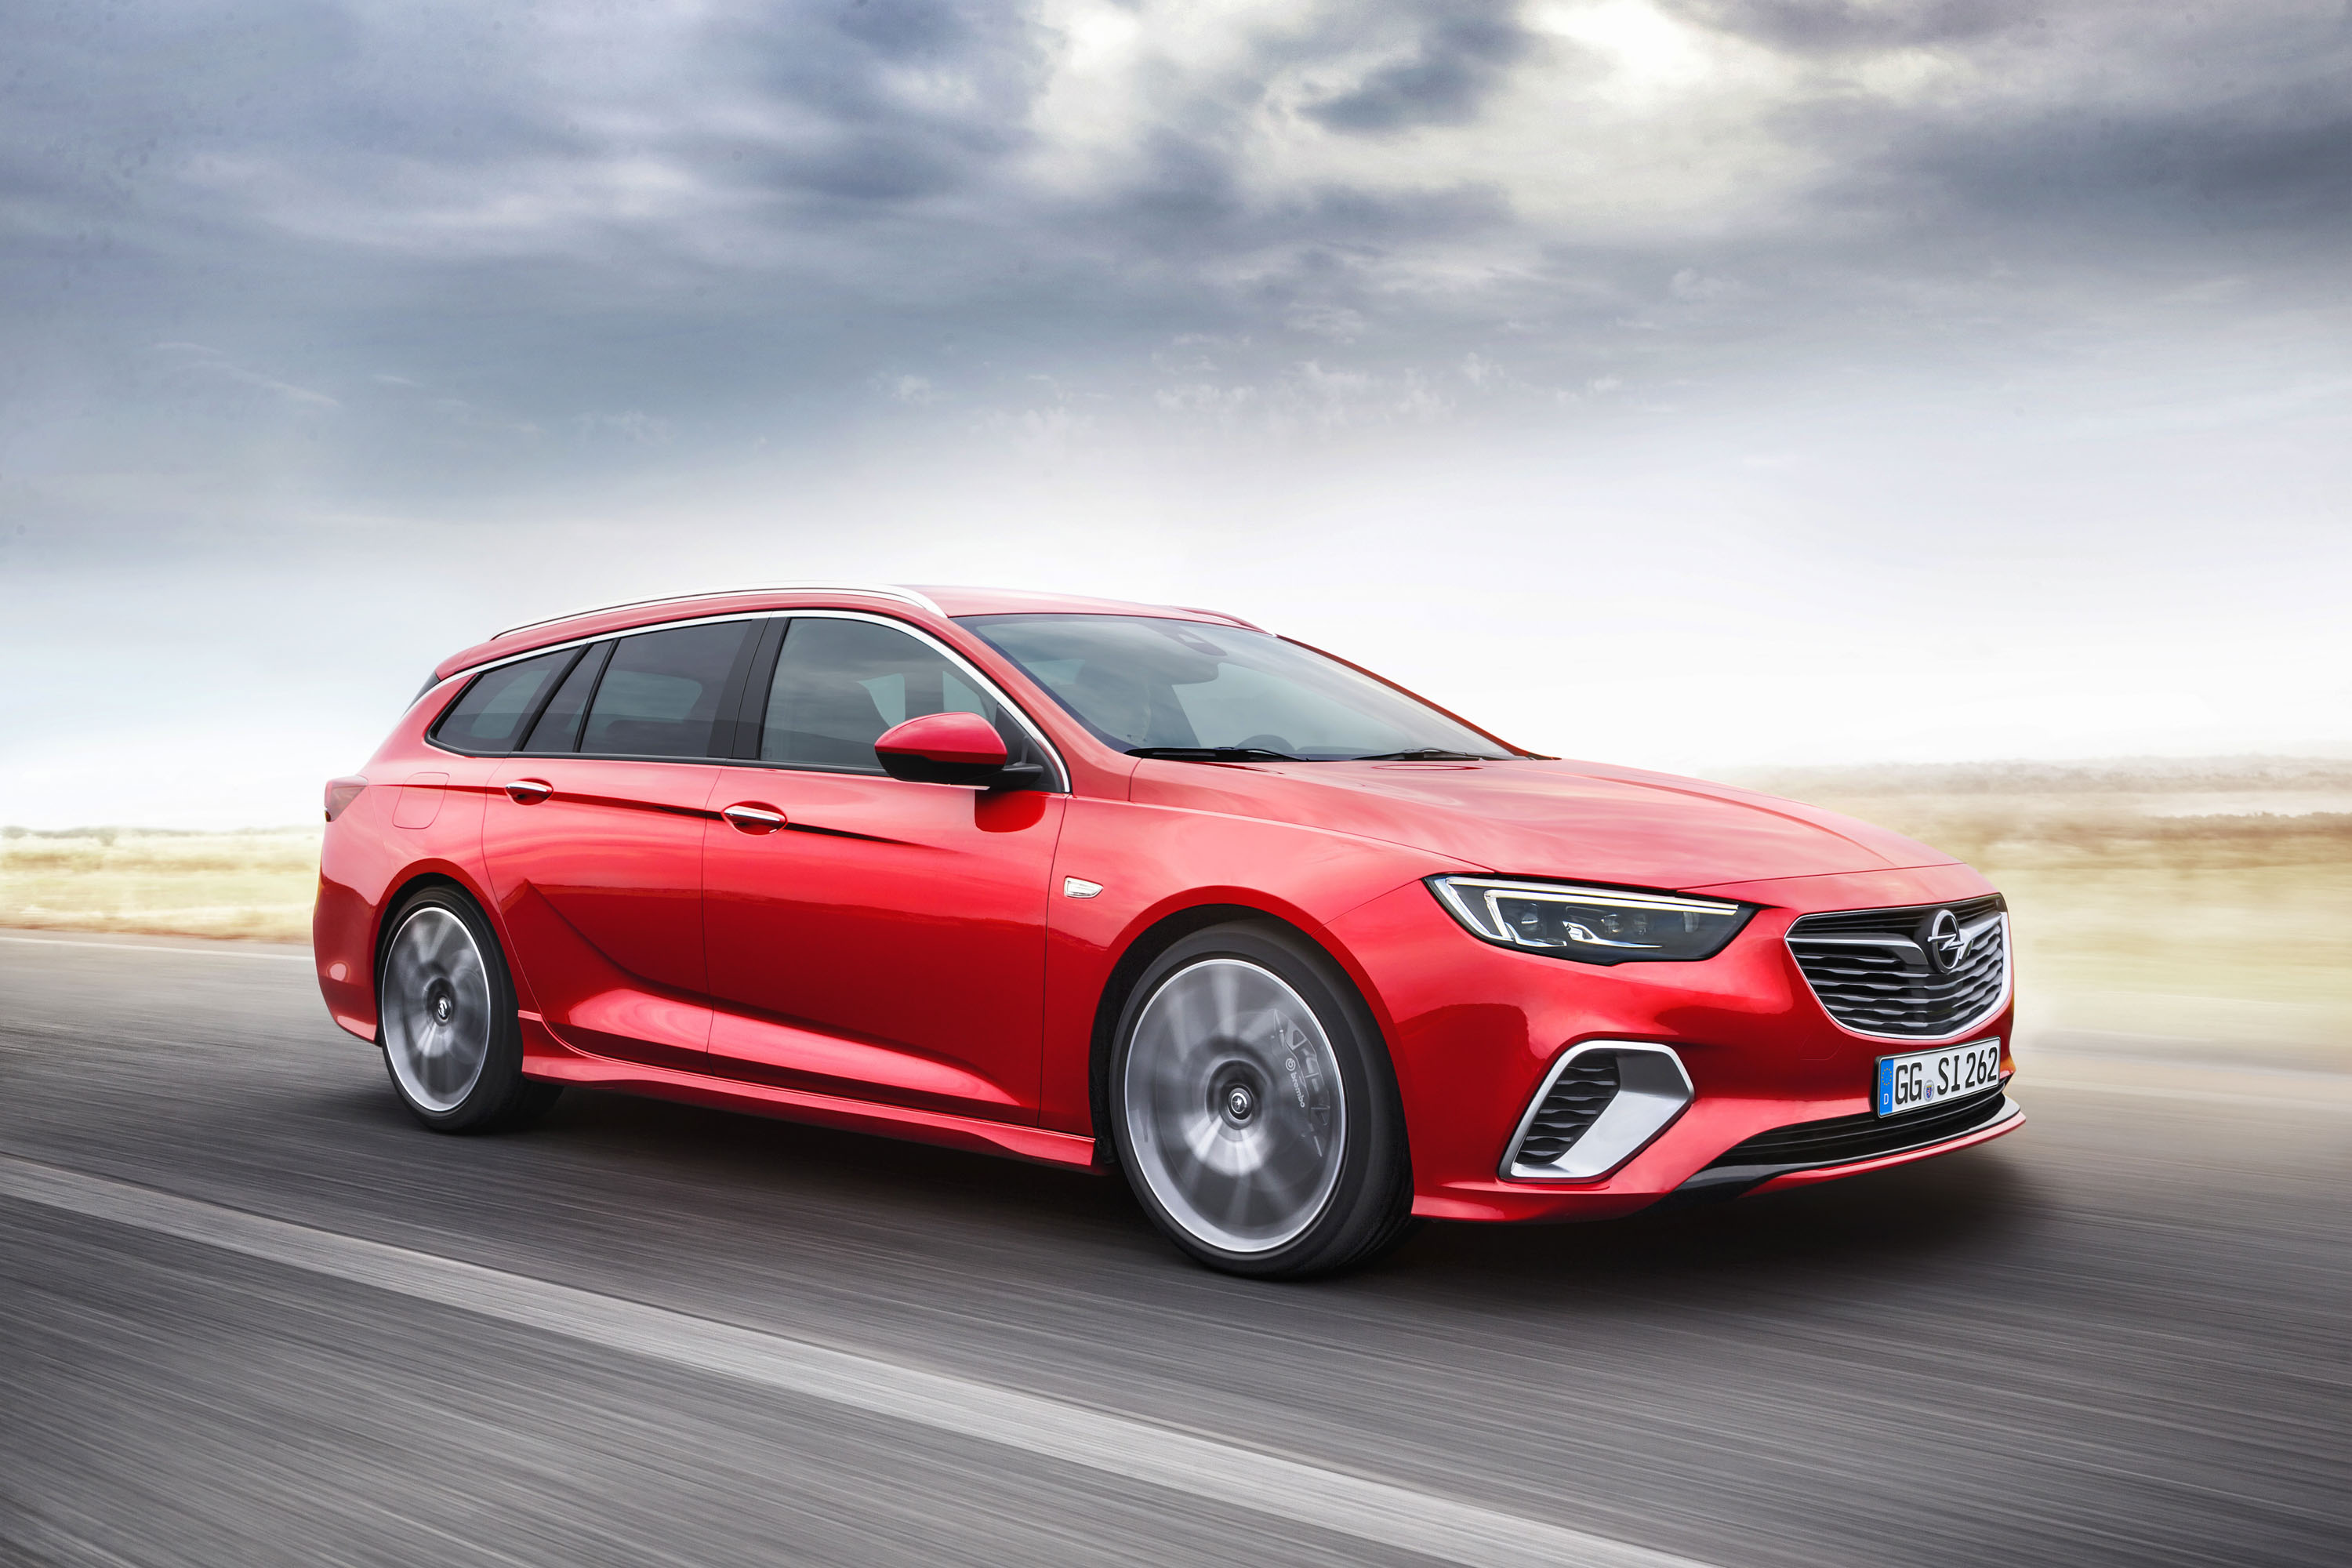 2018 Opel Insignia GSi Sports Tourer | Top Speed. »